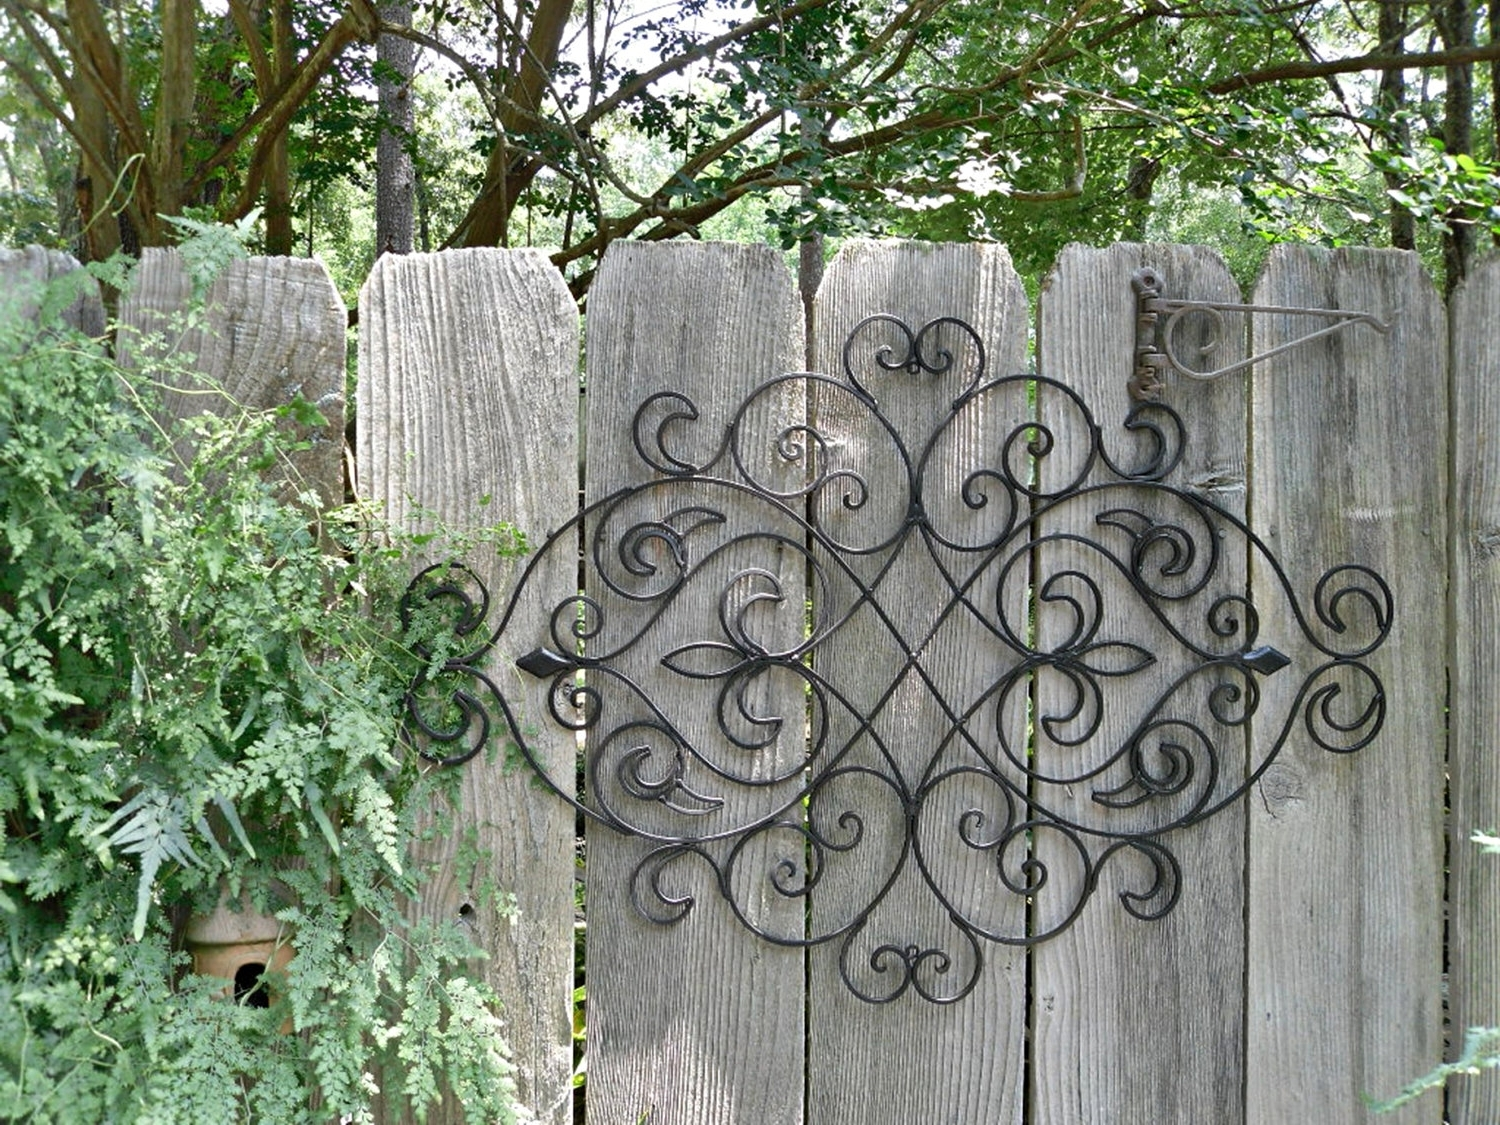 Wrought Iron With Regard To 2018 Outdoor Metal Art For Walls (View 15 of 15)